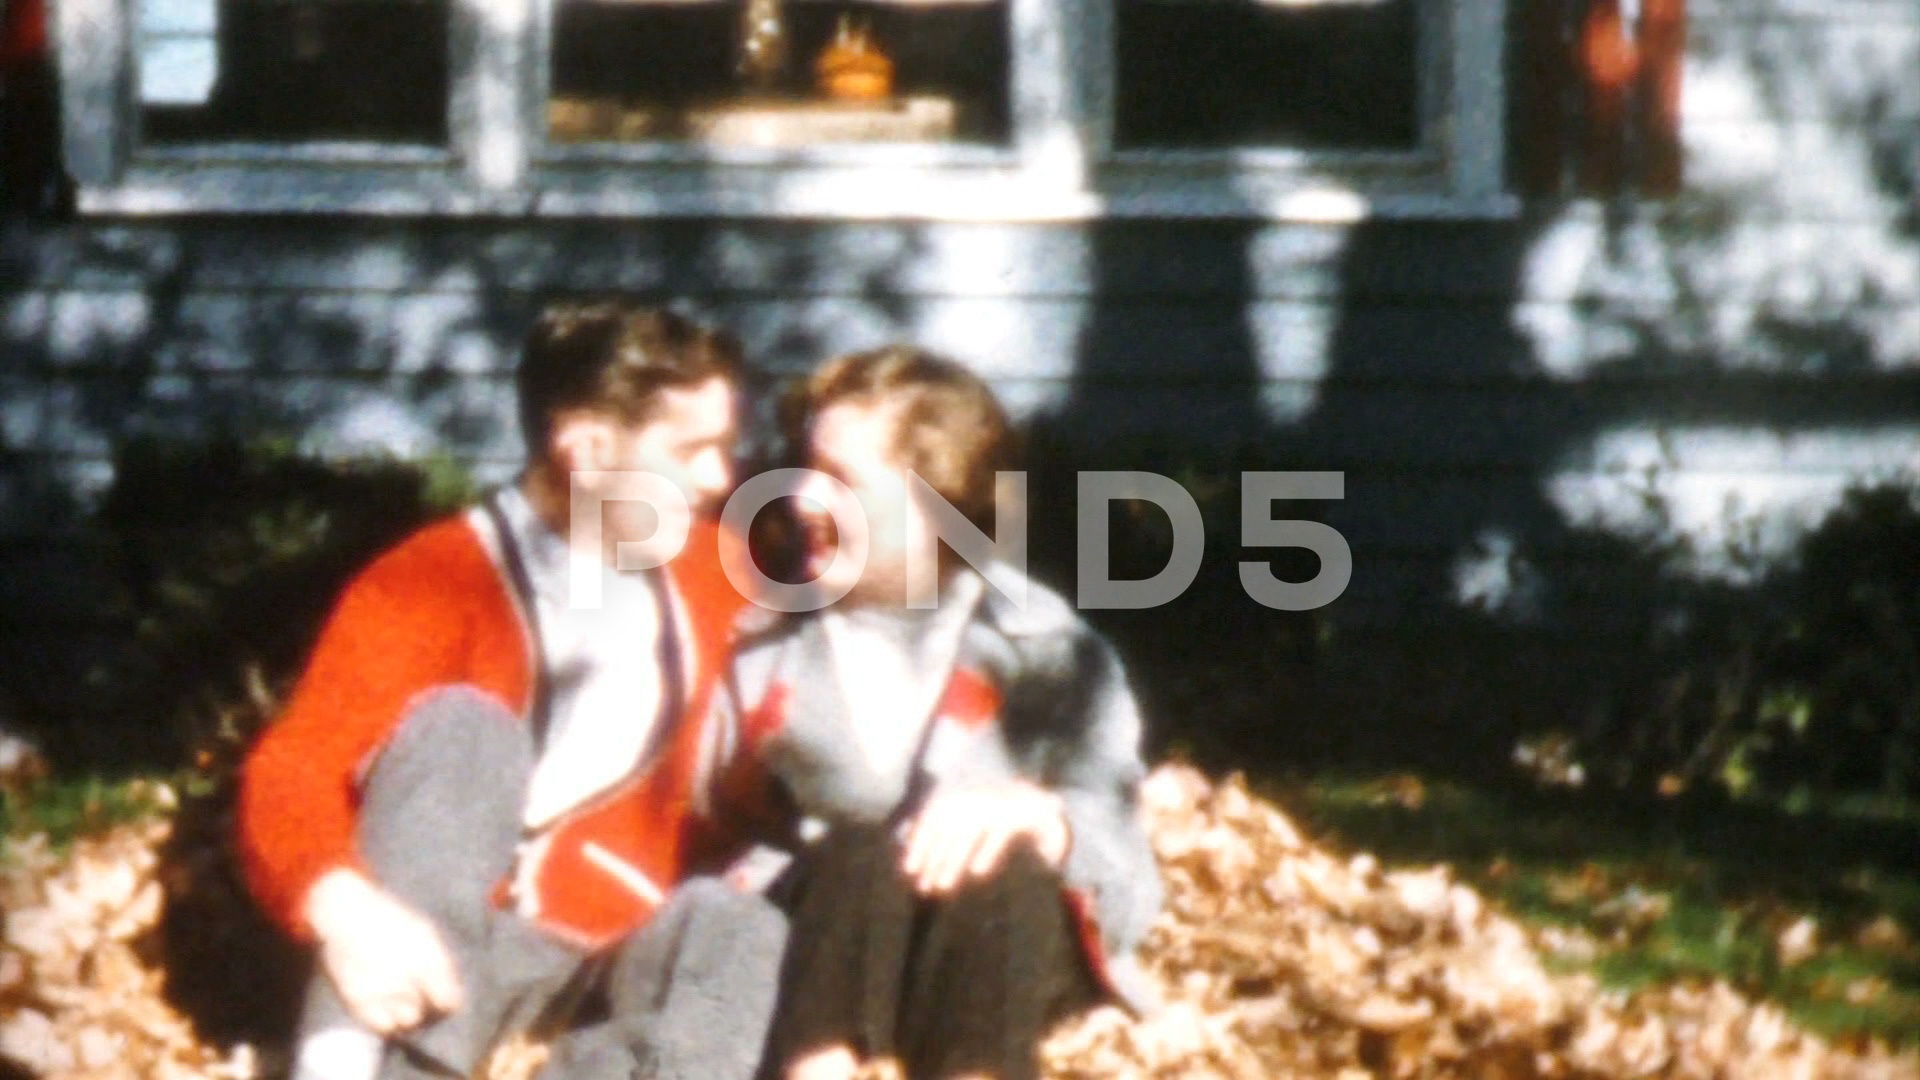 Young Couple In Love Spending Time Together-1958 Vintage 8mm Film - Fusion Footage ▶0:30